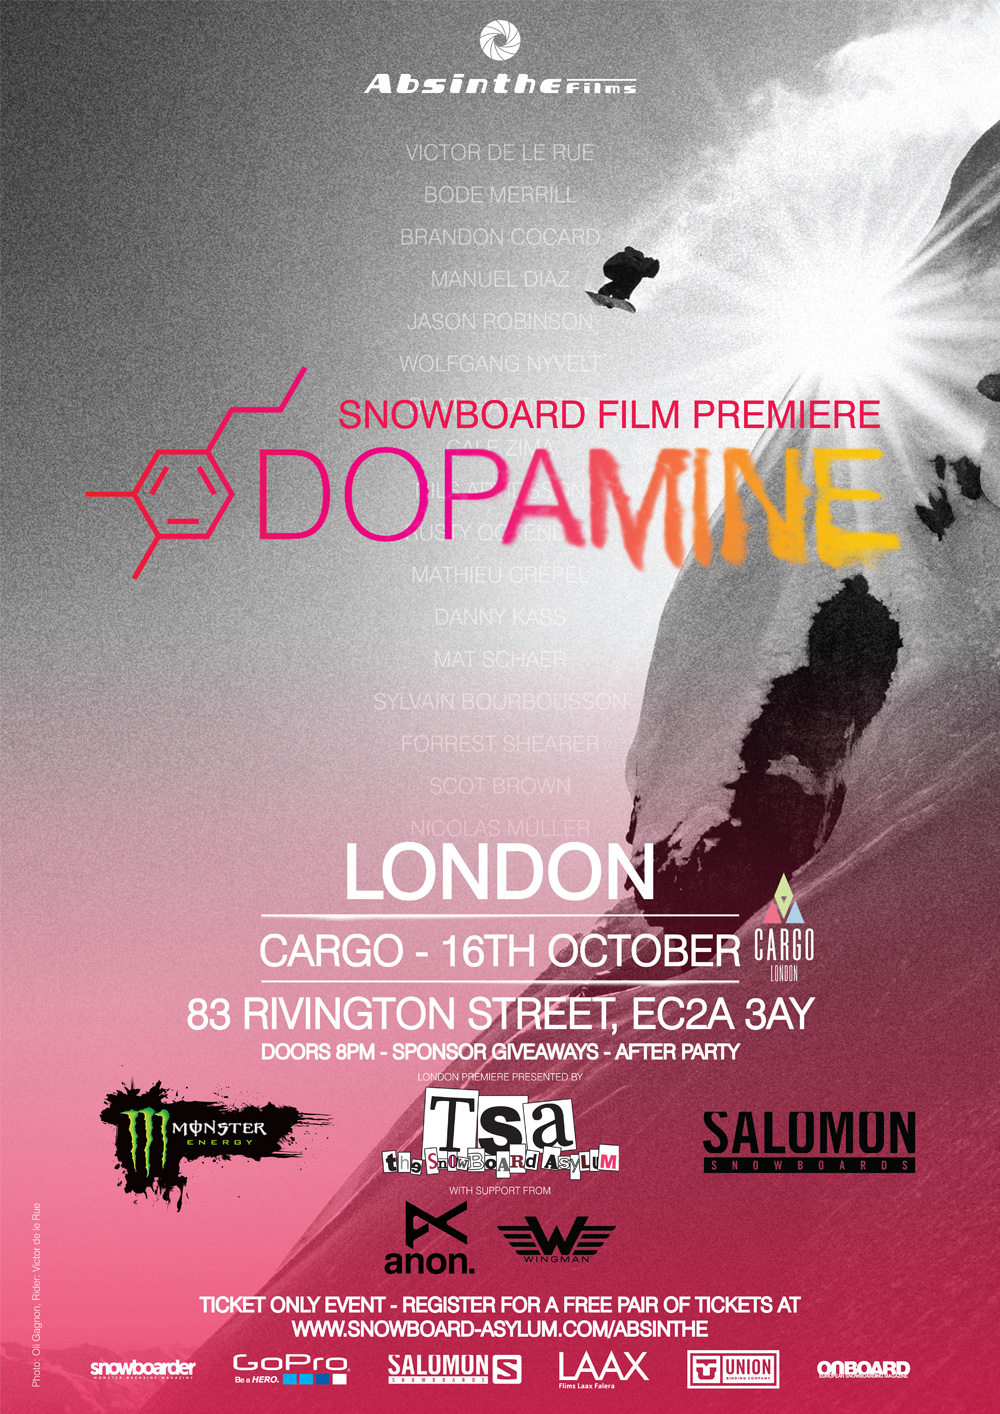 Absinthe Films presents: Dopamine